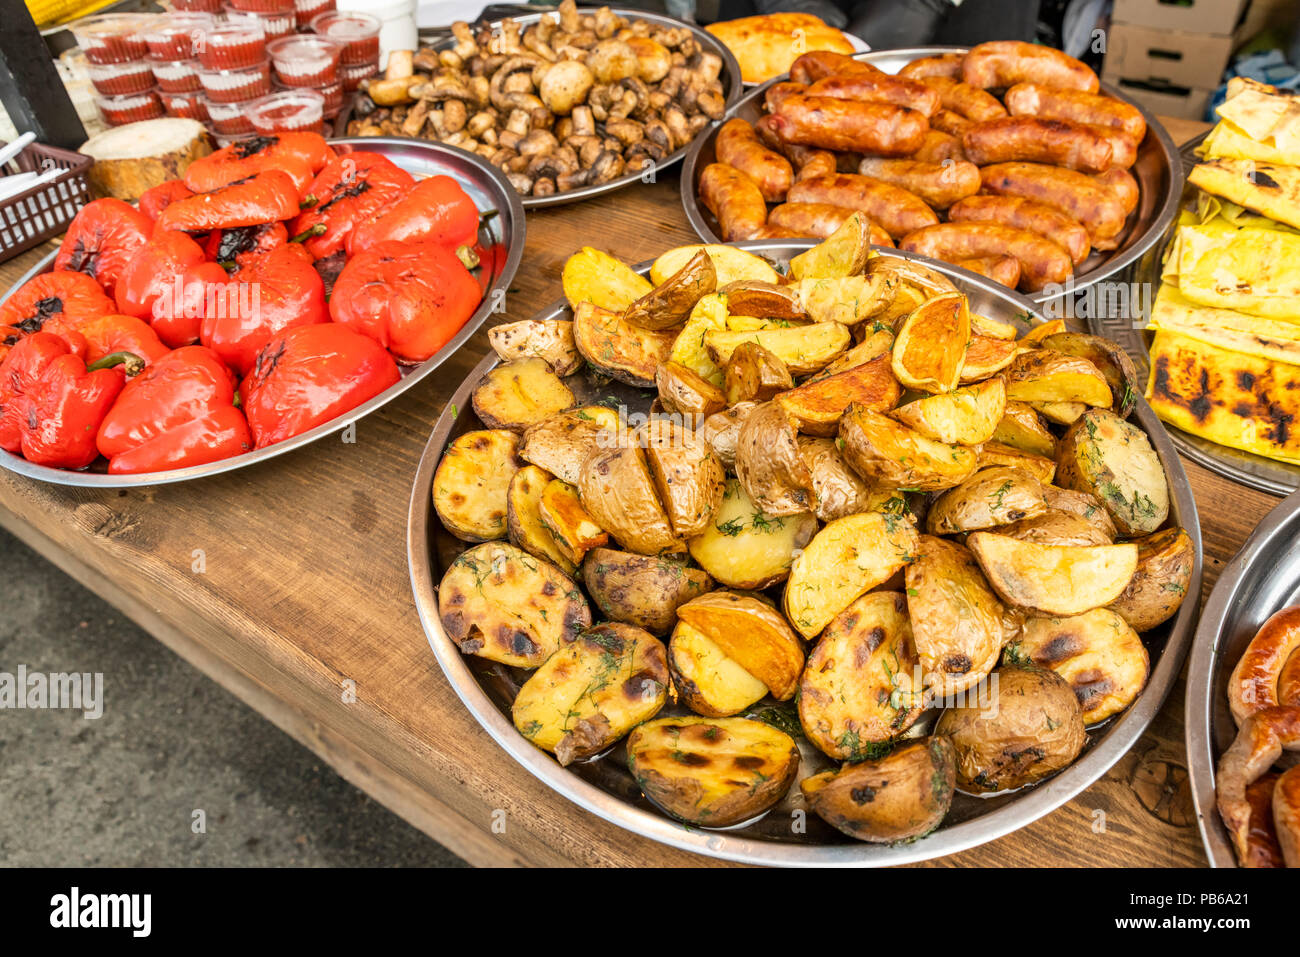 Fried Potatoes Sliced In Large Slices Laid Out On A Large Metal Plate With Fried Sausage And Baked Vegetables And Ketchup In Plastic Containers On A Stock Photo Alamy